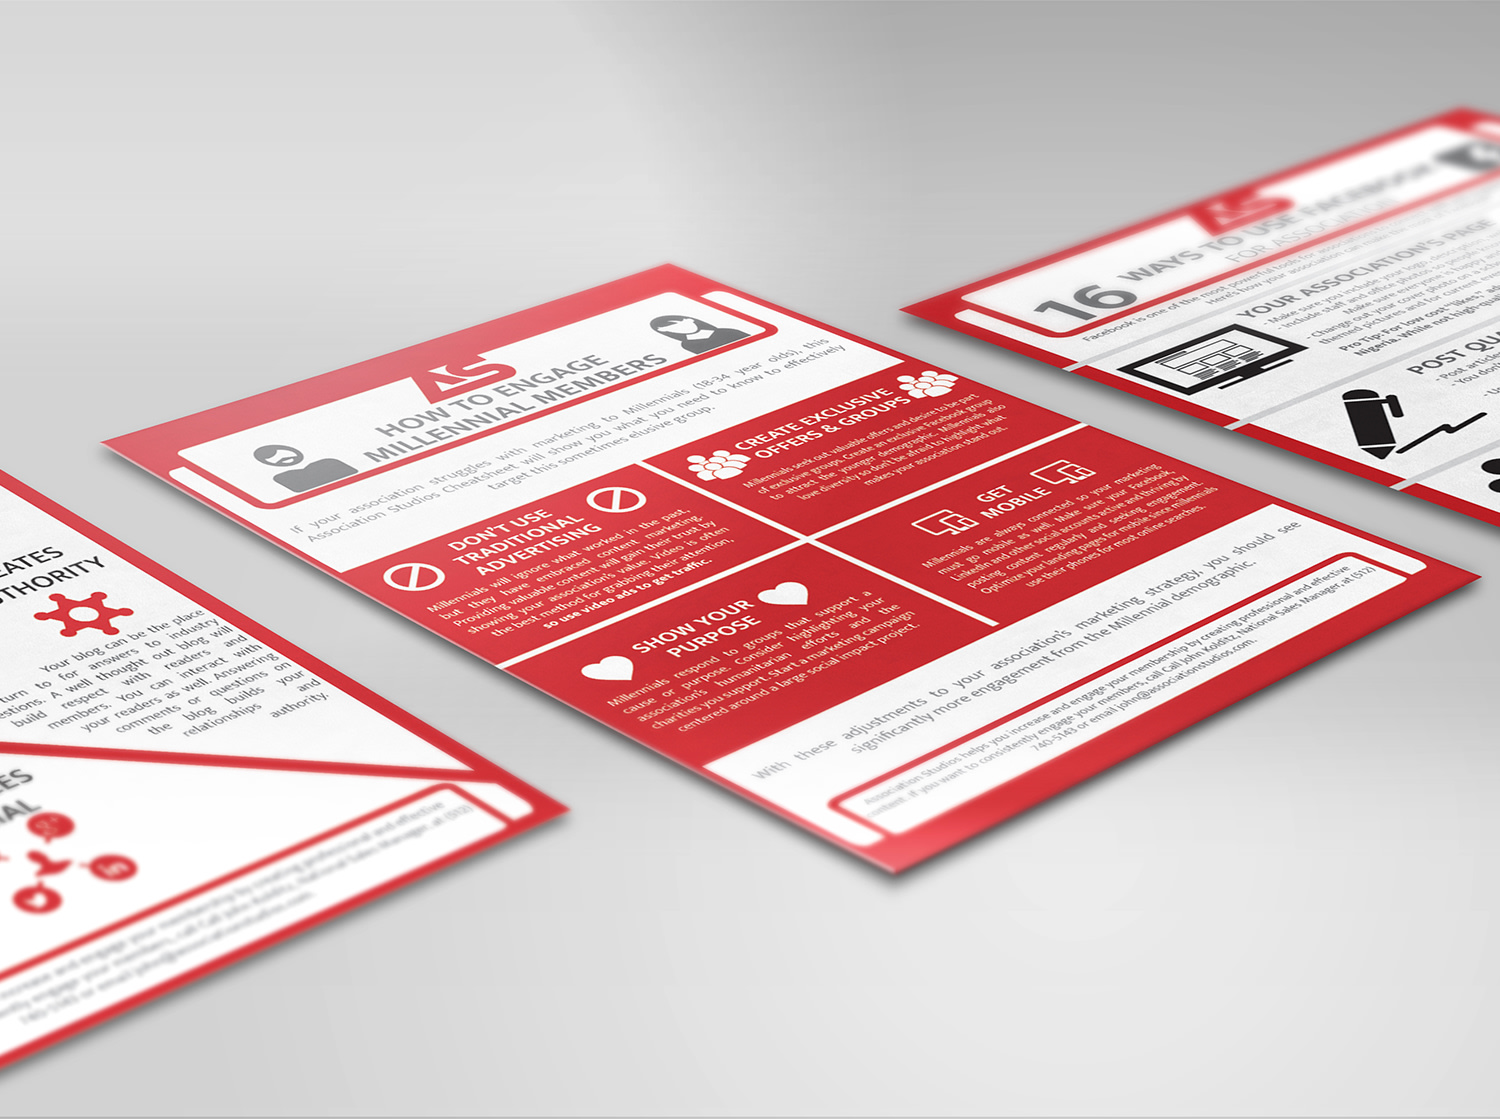 Print and Digital Infographic Design